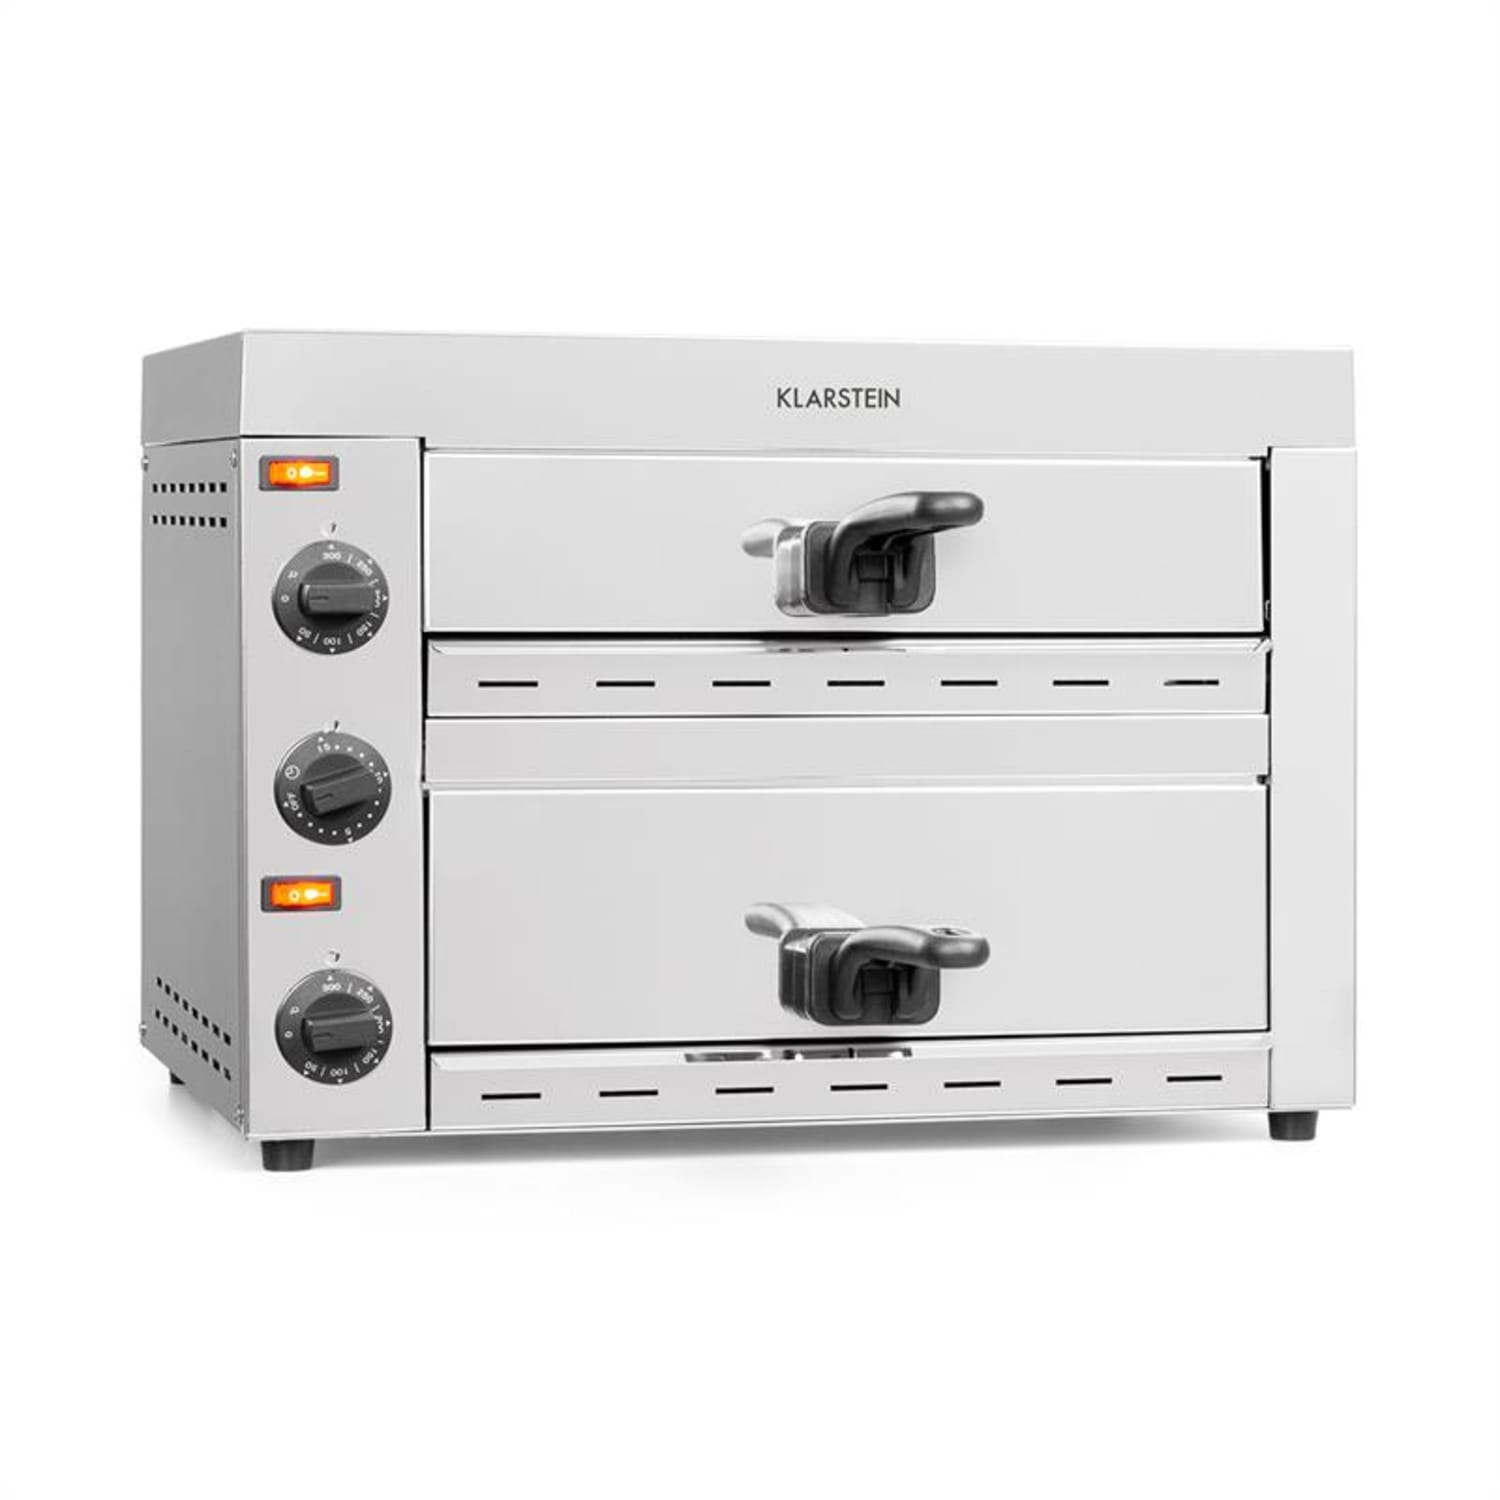 Vesuvio II Pizza Oven Gastro 2 Chambers 2260W 300 ° C Timer Stainless Steel Silver